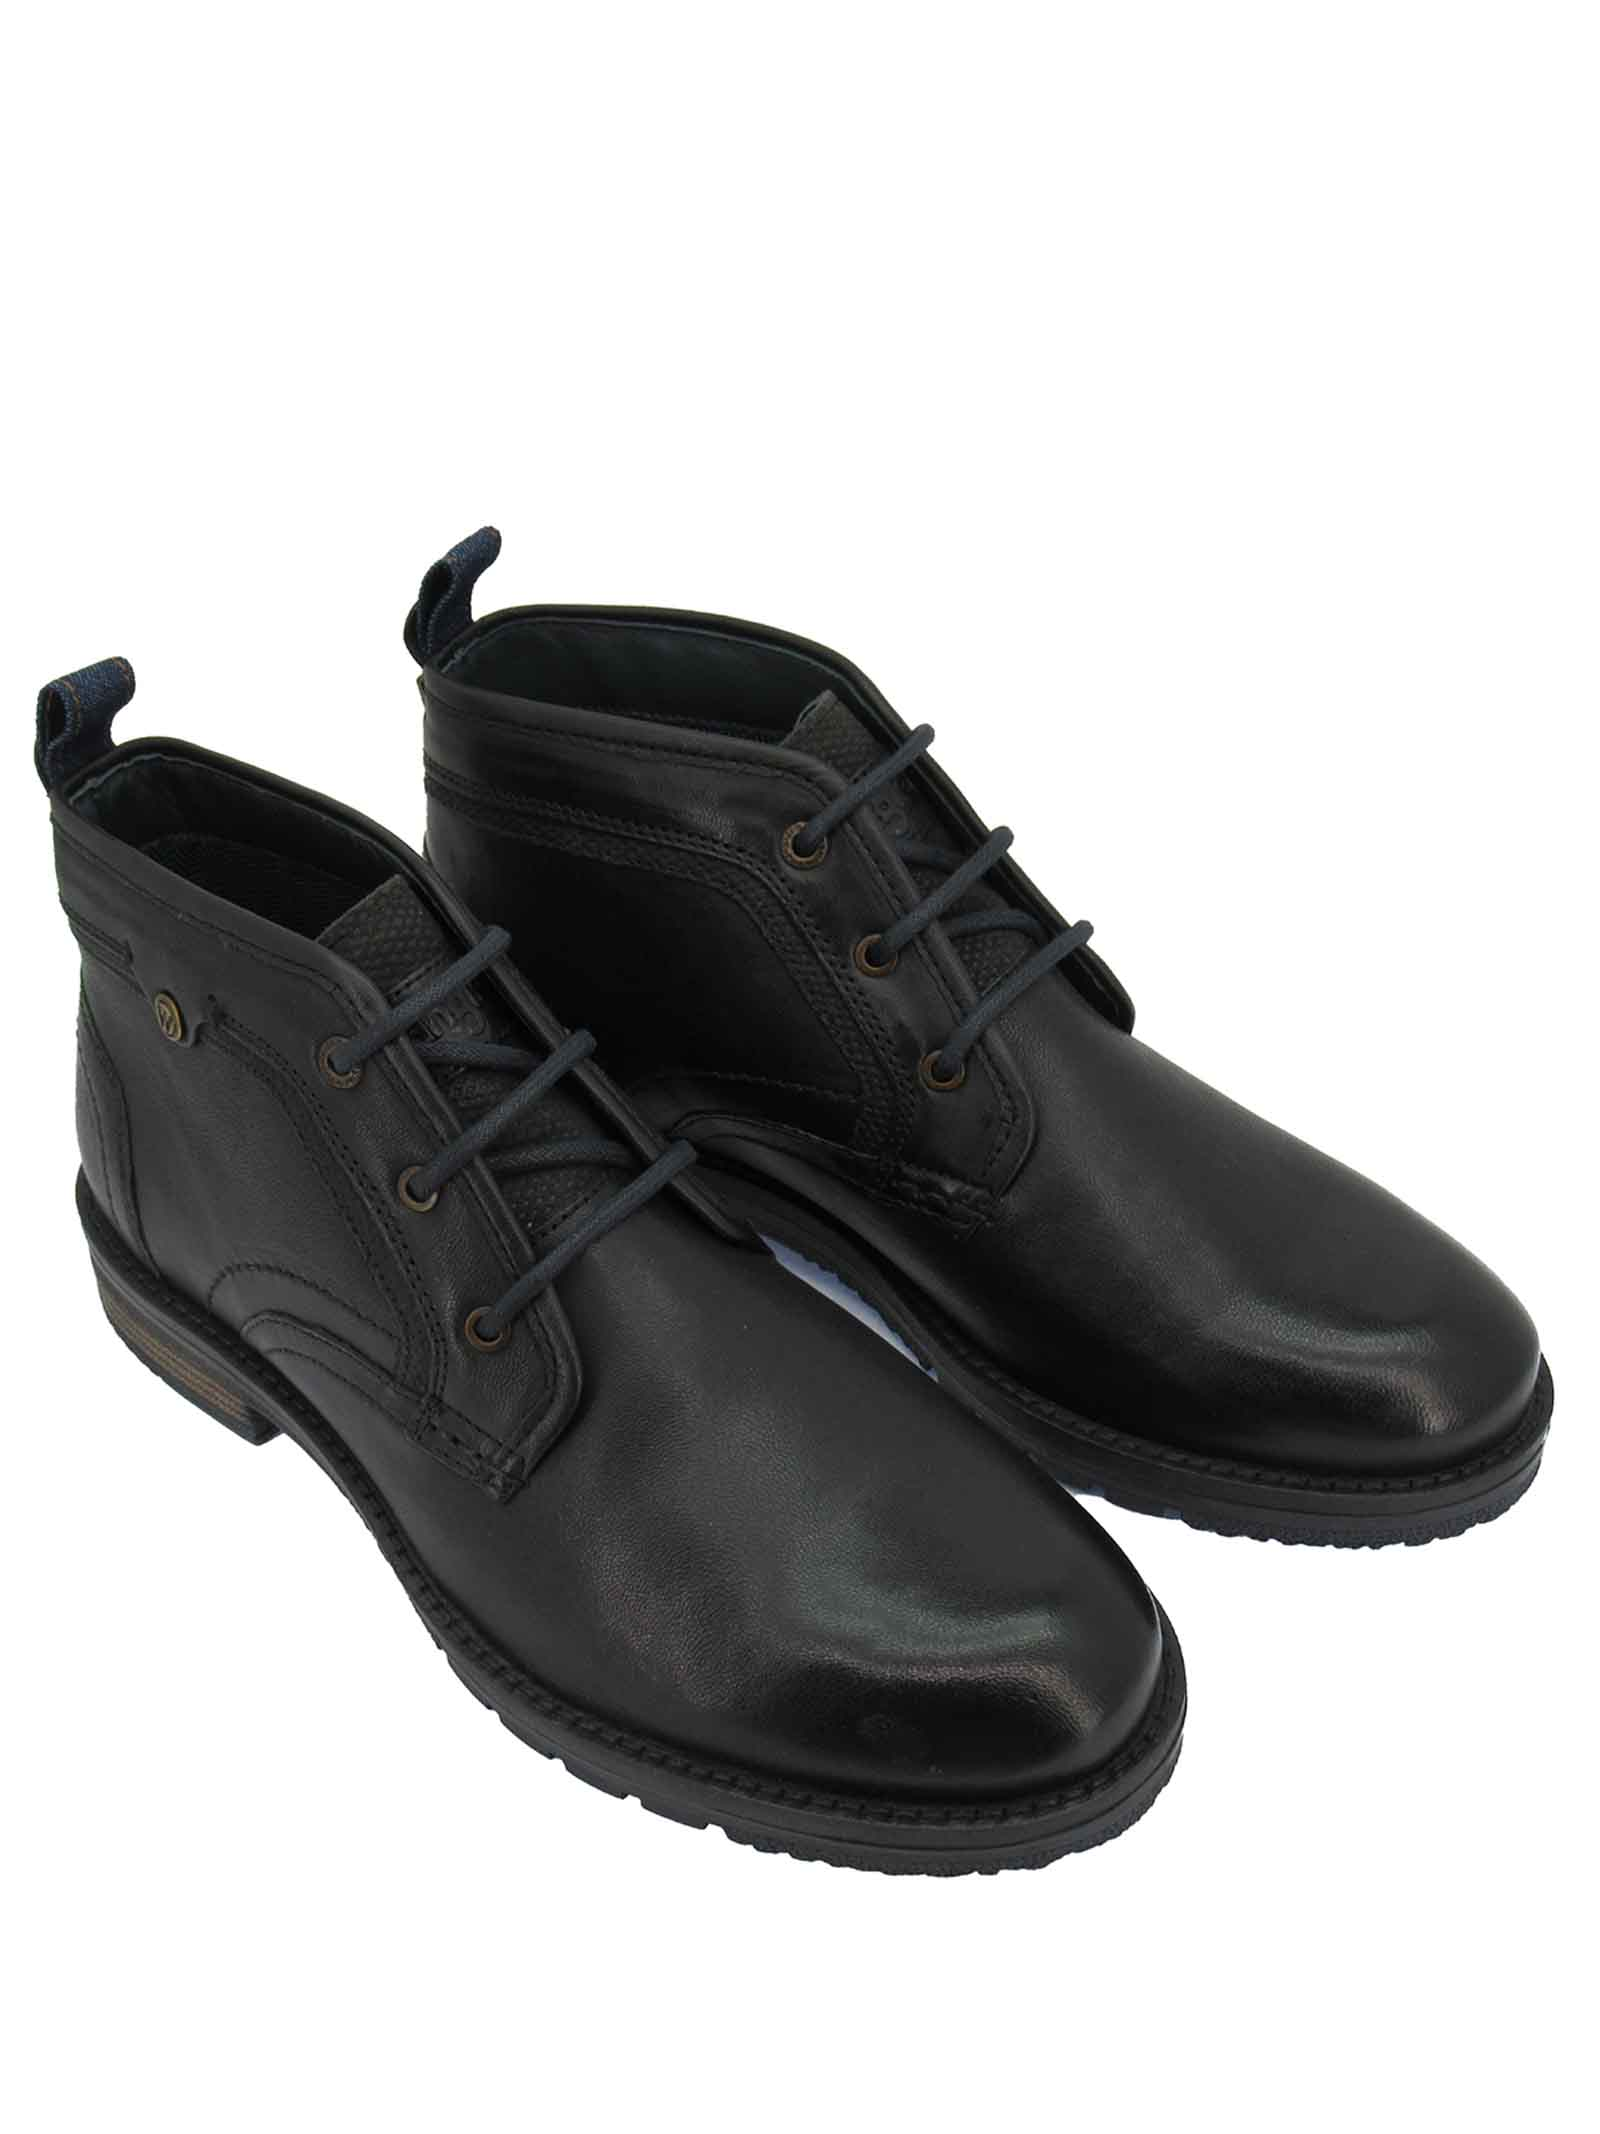 Men's Boogie Chukka Laced Ankle Boots in Black Leather with Rubber Sole Wrangler   Ankle Boots   WM12050A096